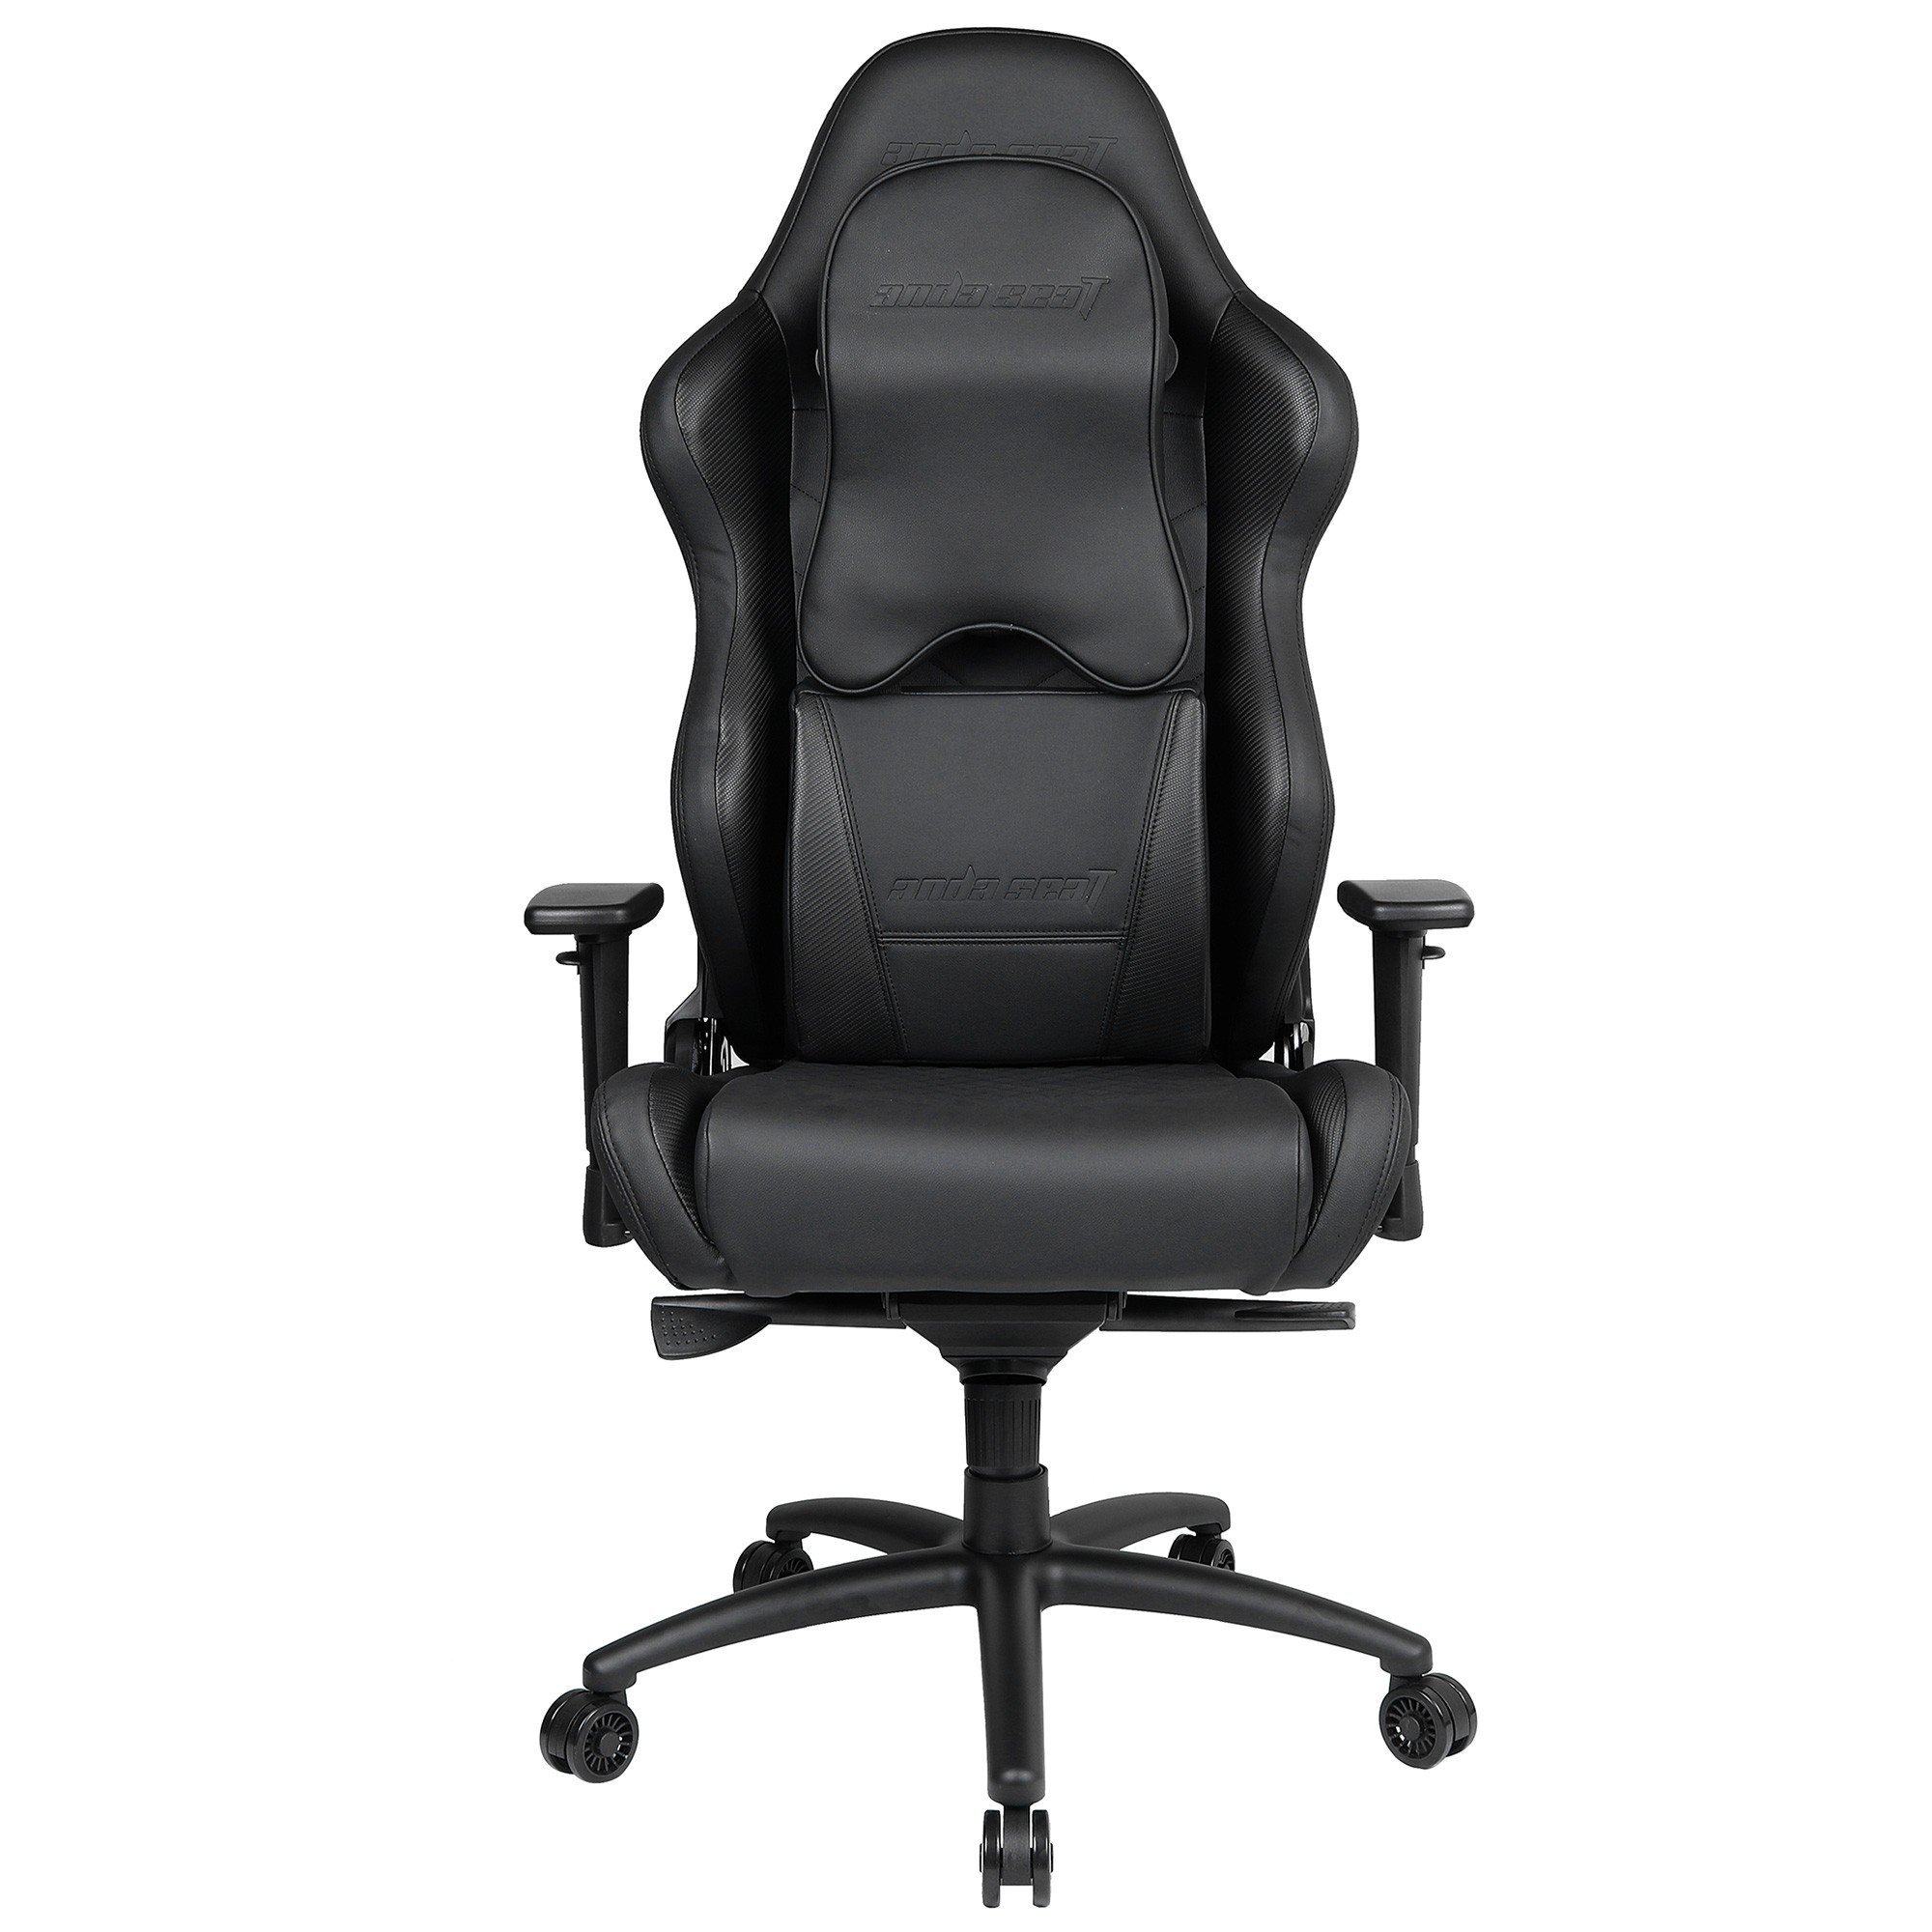 Anda Seat AD4XL Gaming Chair, Wizard, Black